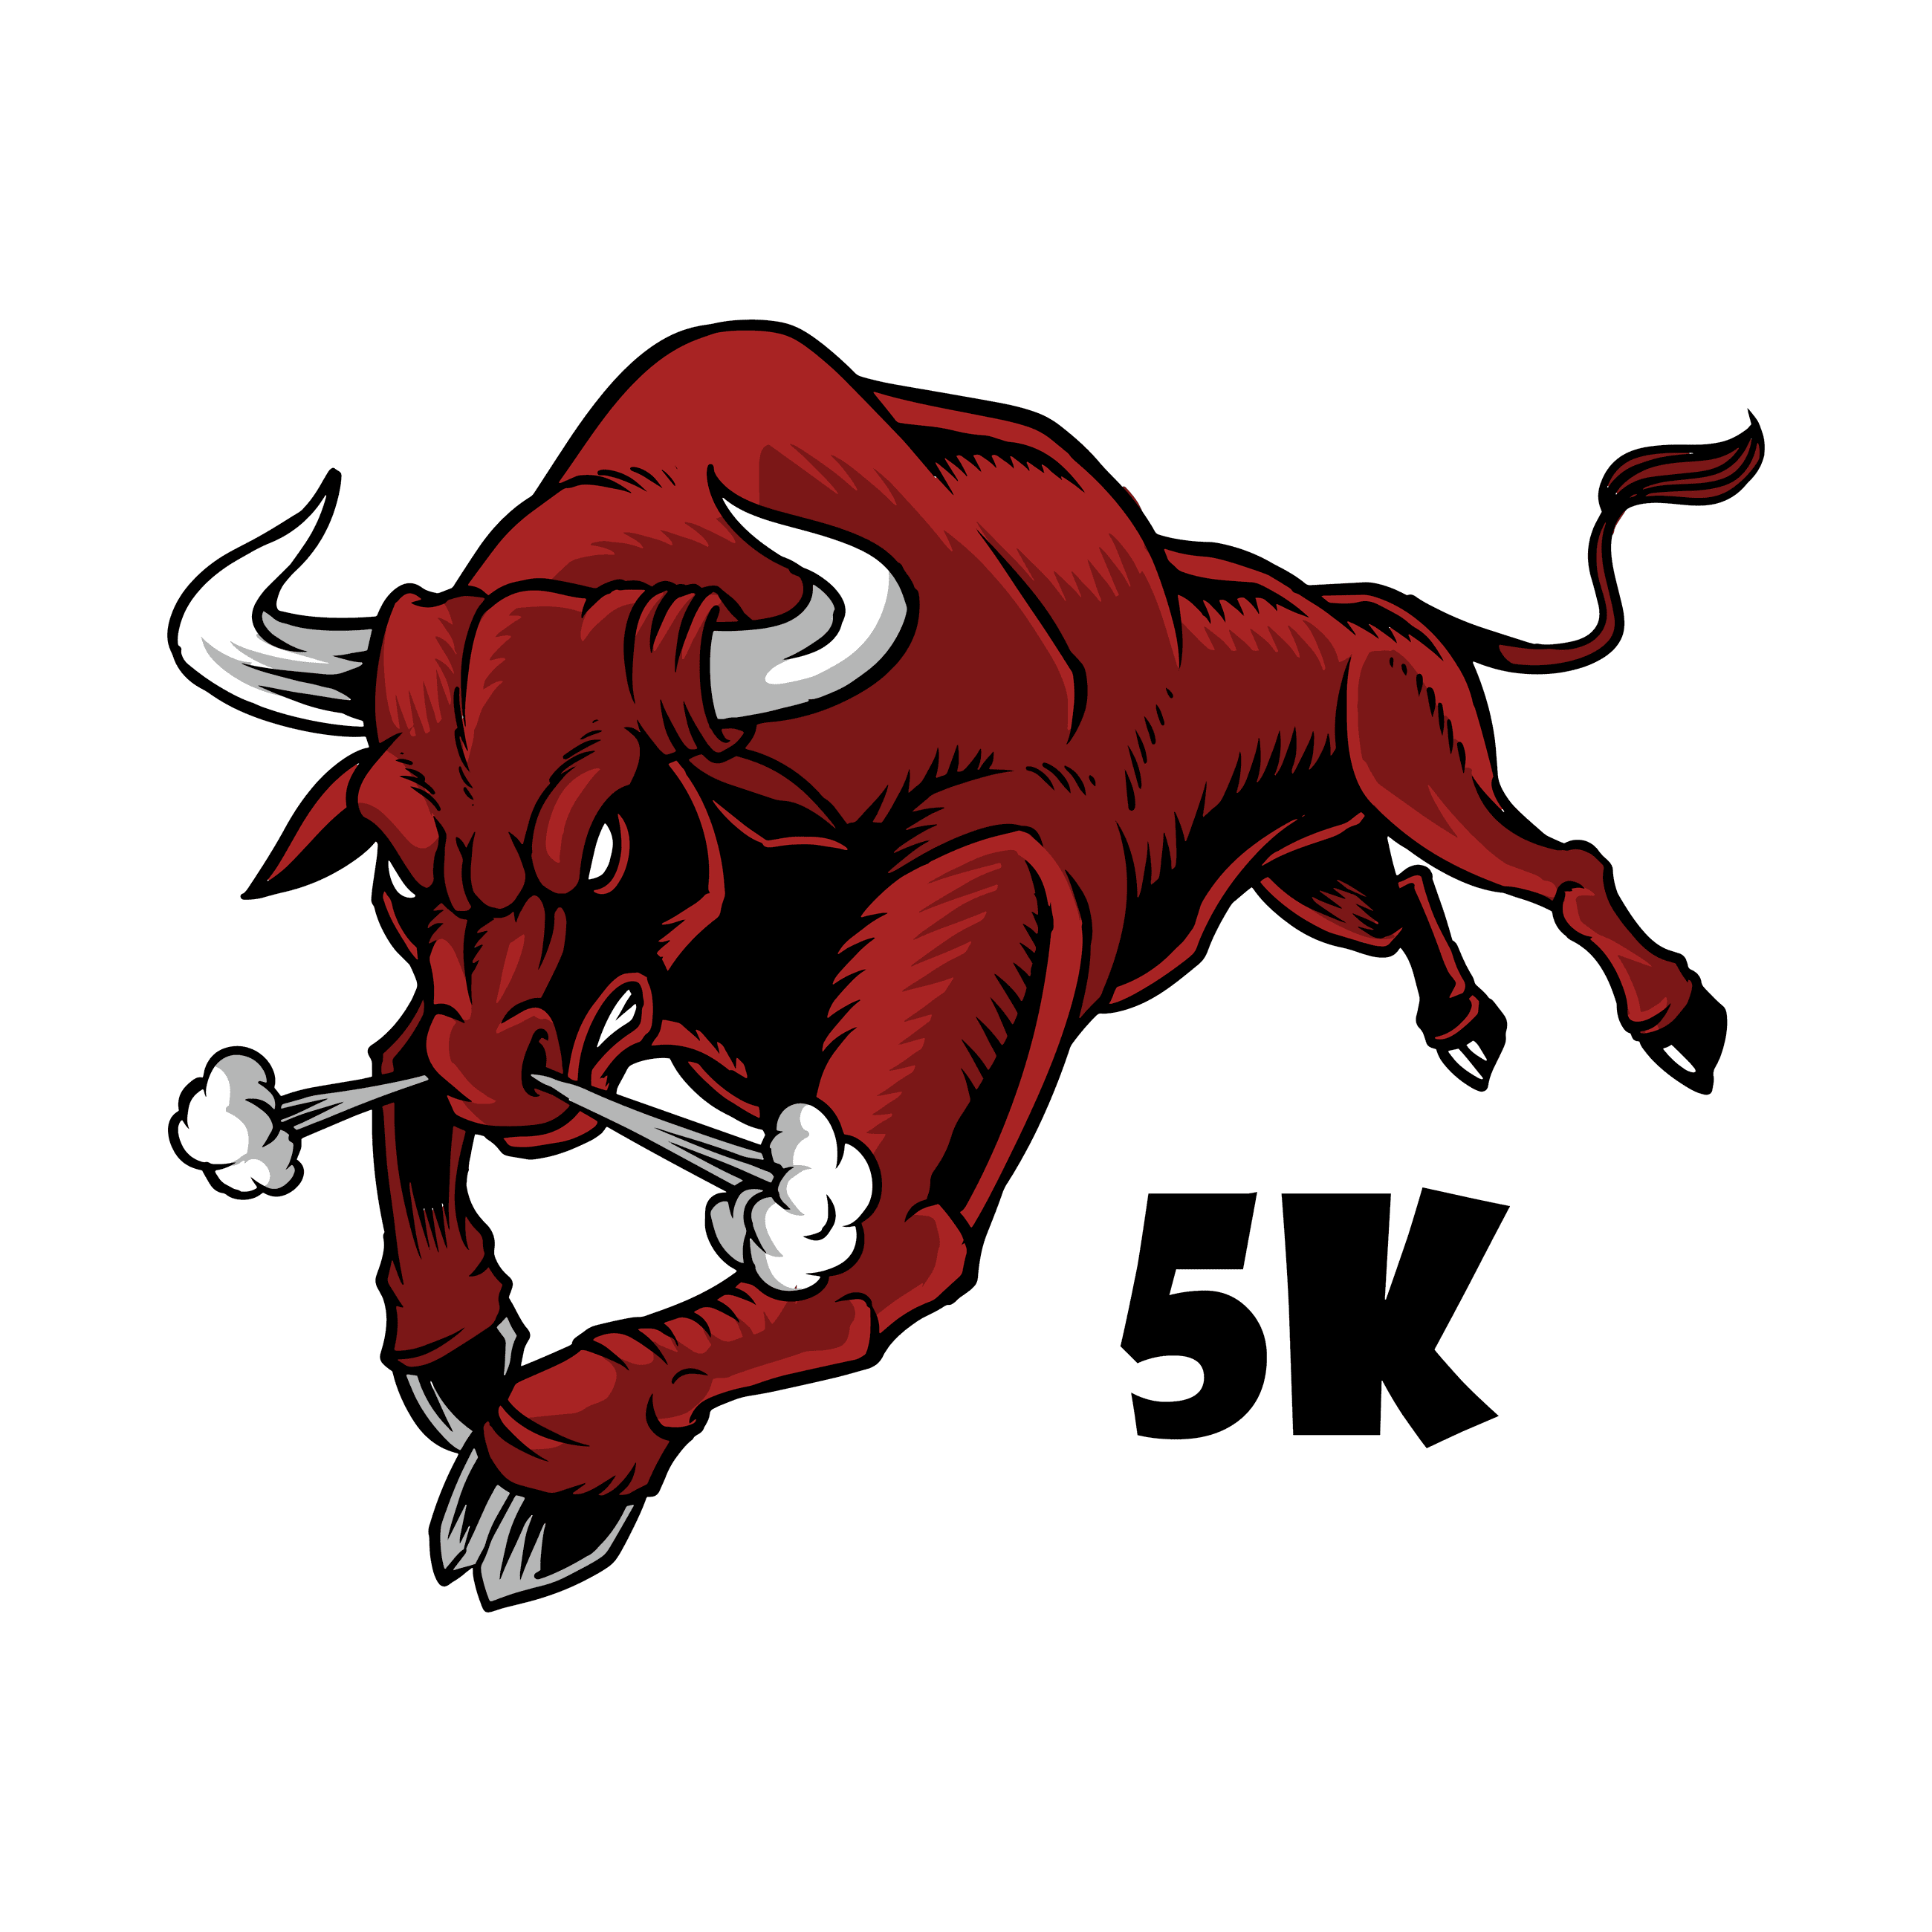 Running of the Bulls 5K logo